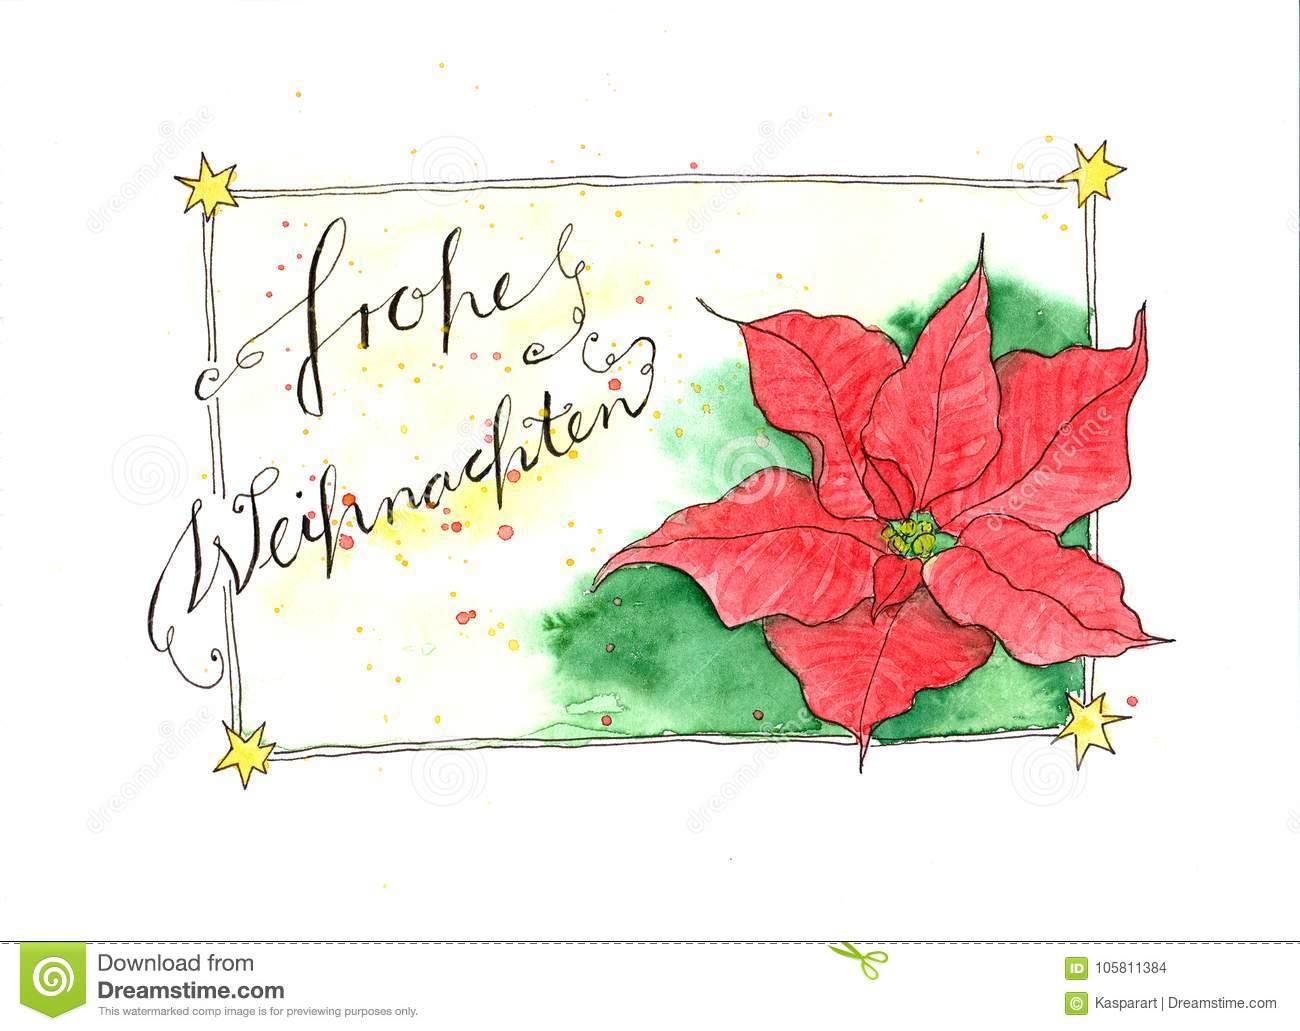 Frohe Weihnachten Text.Watercolor Painting Christmas Card With Poinsettia Flower